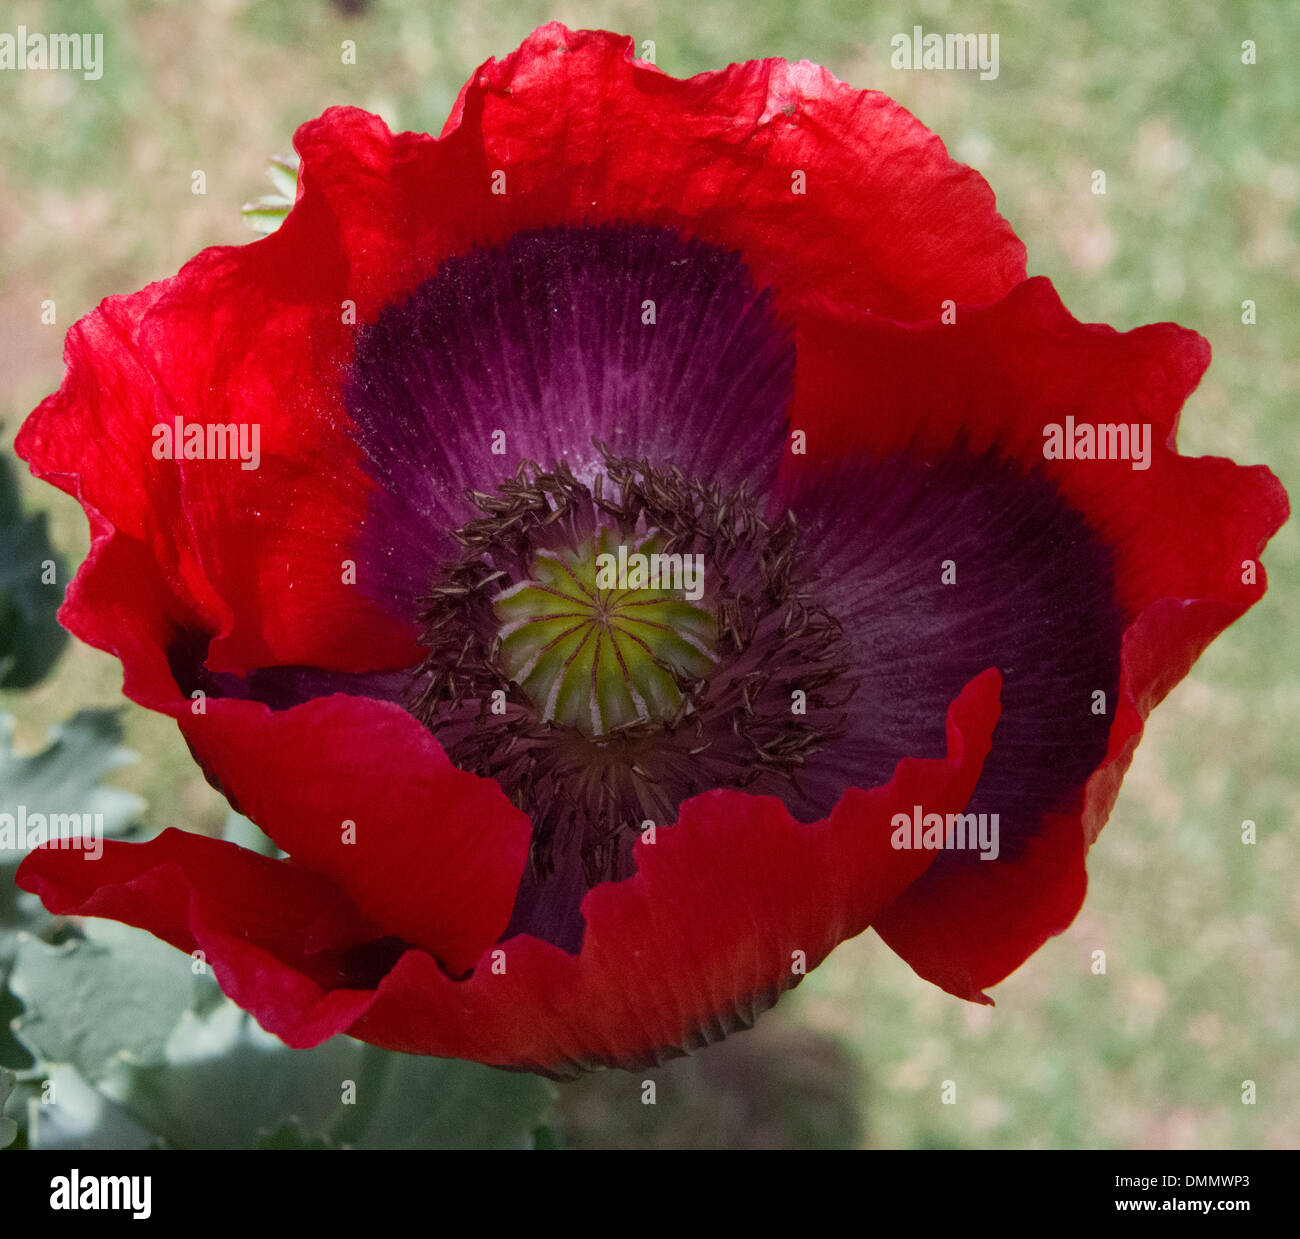 Yellow poppy flower meaning images flower decoration ideas poppy flower significance gallery flower decoration ideas purple poppy flower meaning images flower decoration ideas poppy mightylinksfo Gallery